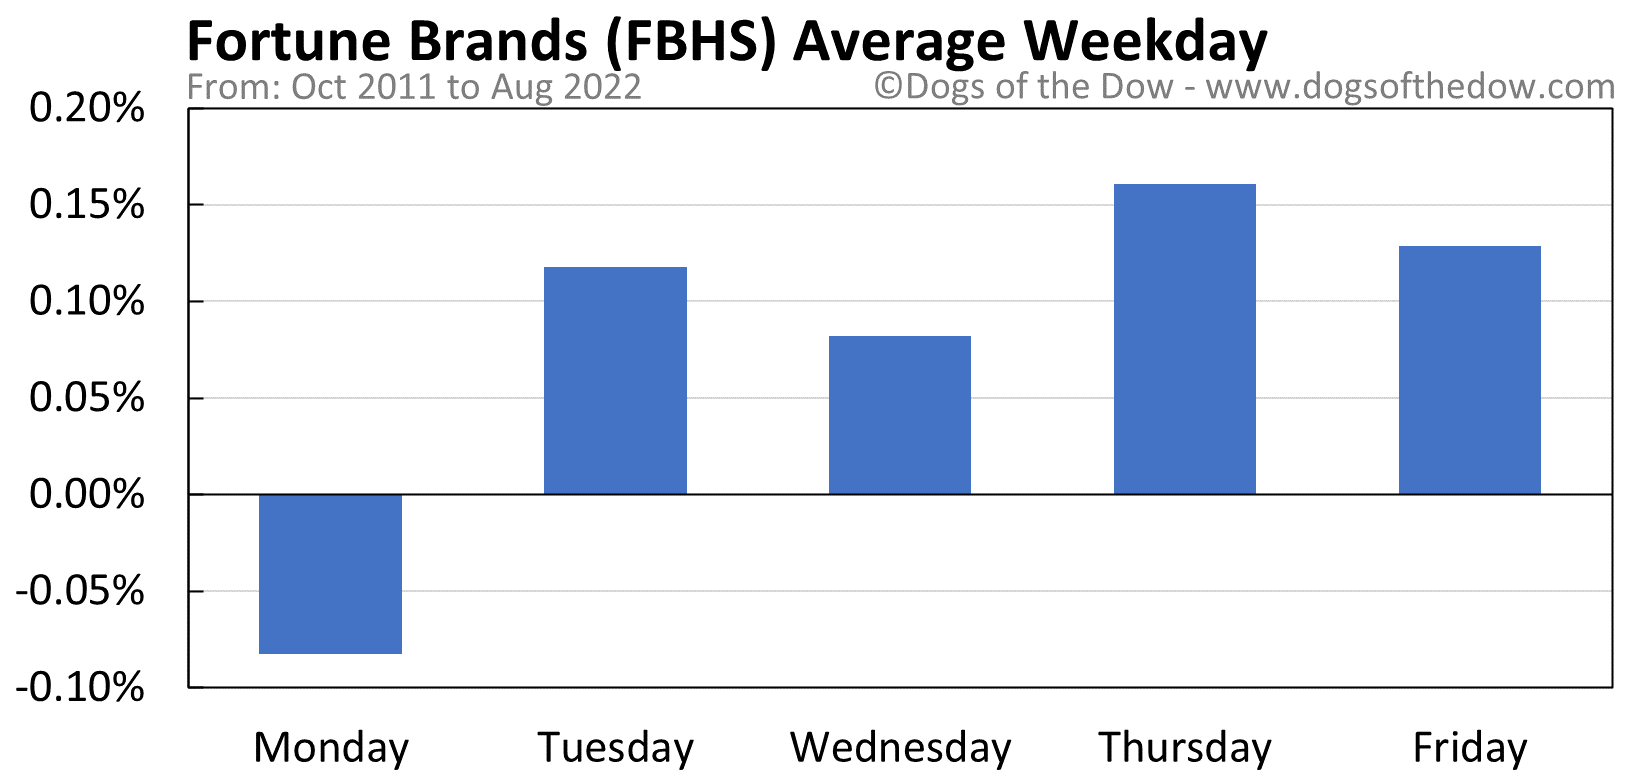 FBHS average weekday chart